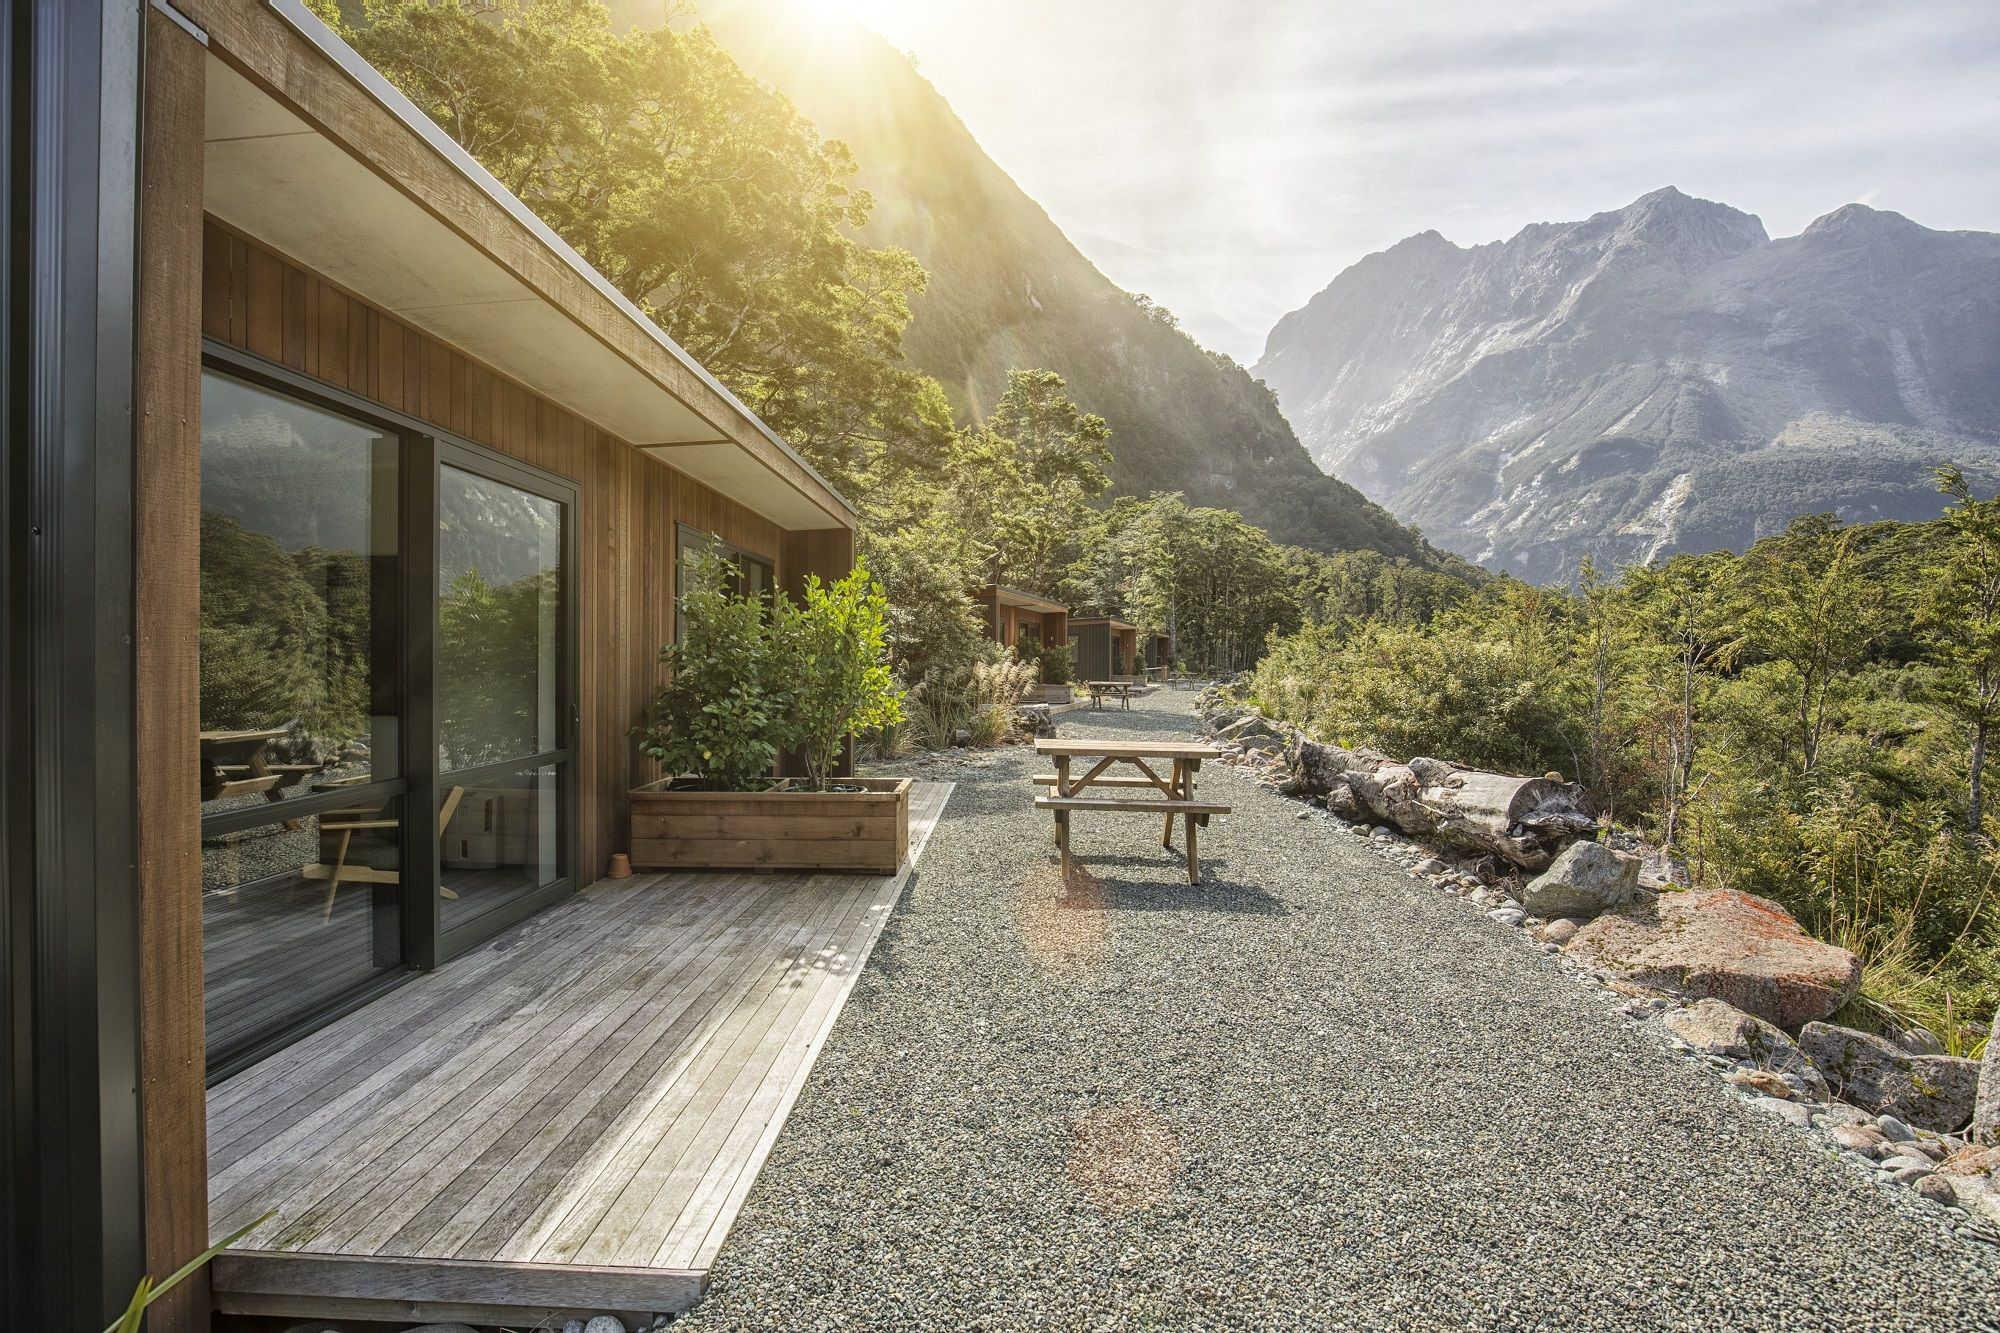 The Mountain View Chalets At Milford Sound Lodge In